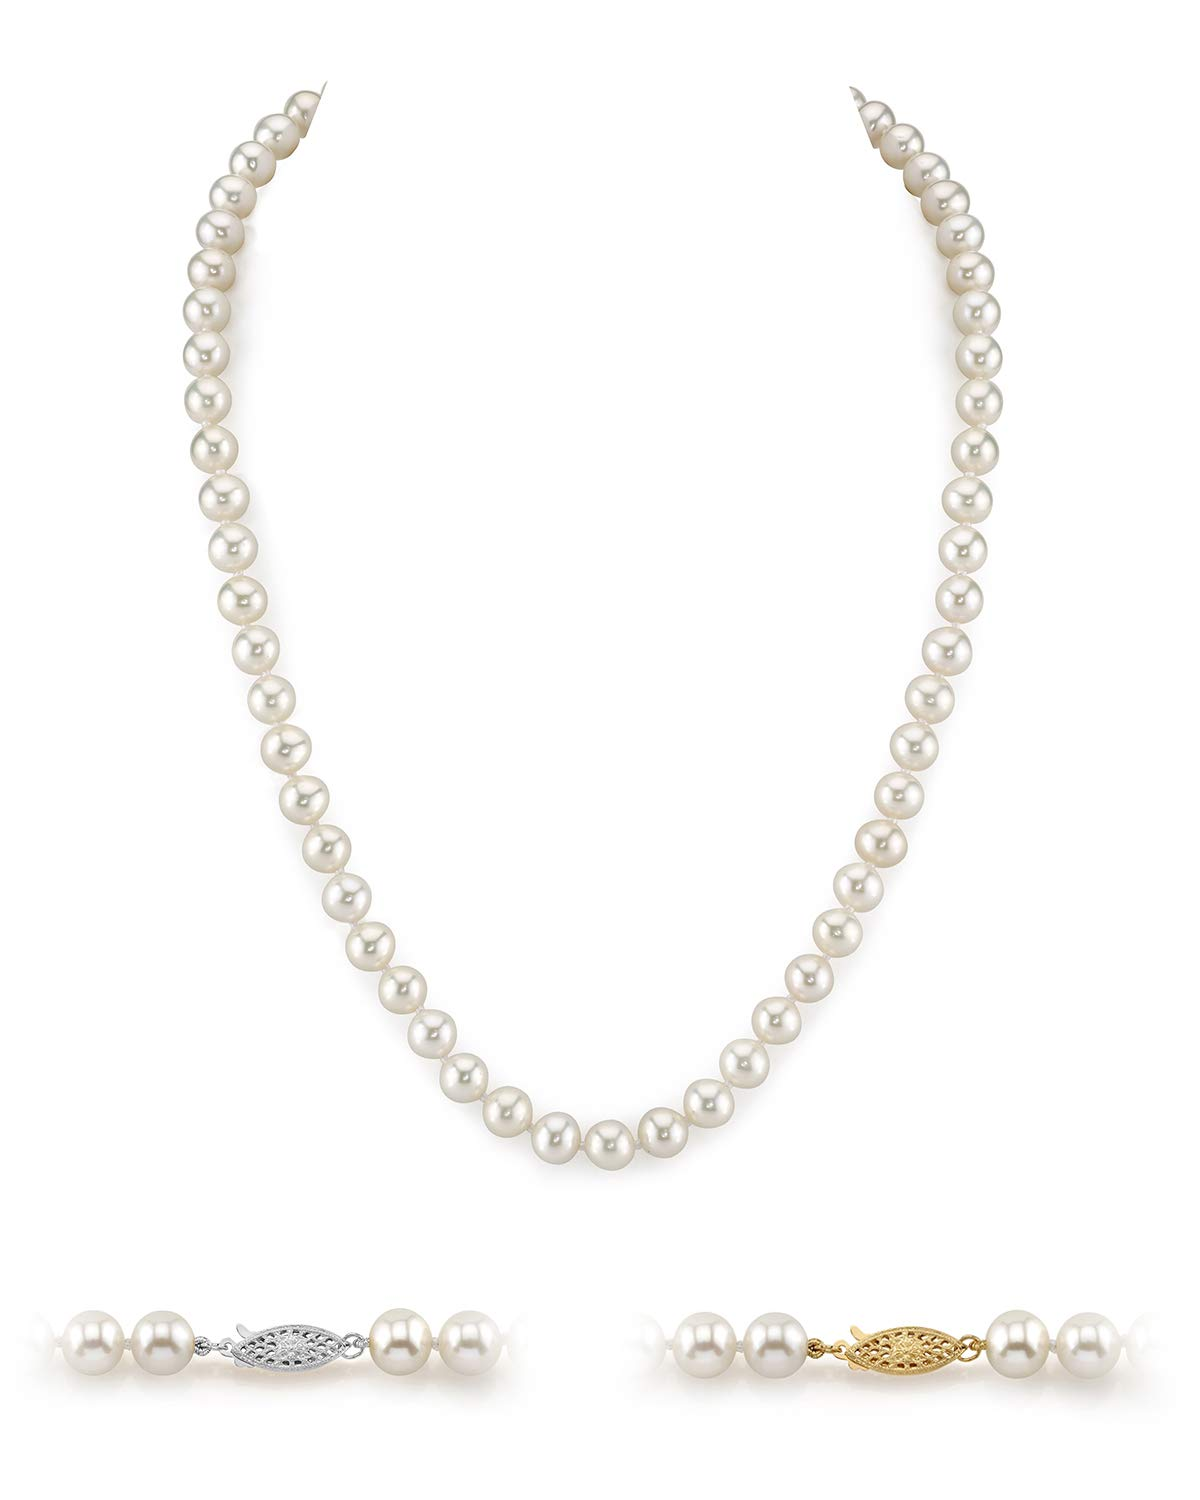 THE PEARL SOURCE 14K Gold 5.0-5.5mm AAAA Quality Round White Freshwater Cultured Pearl Necklace for Women 18'' Princess Length by The Pearl Source